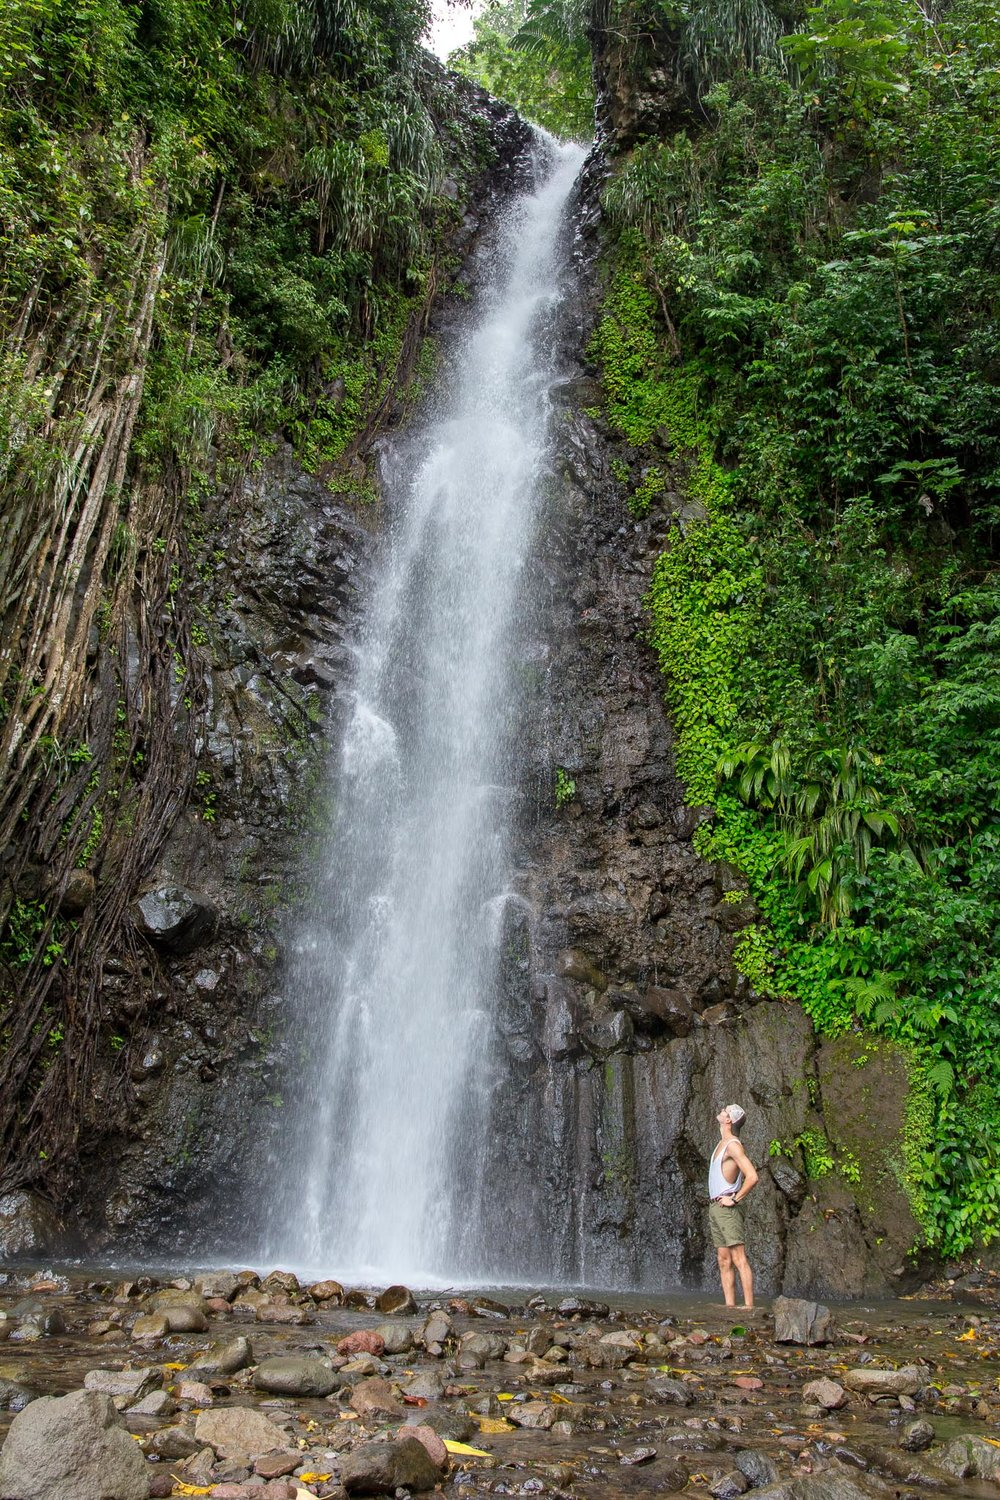 1st Level of Dark View Falls. (6'2 Me for Scale)